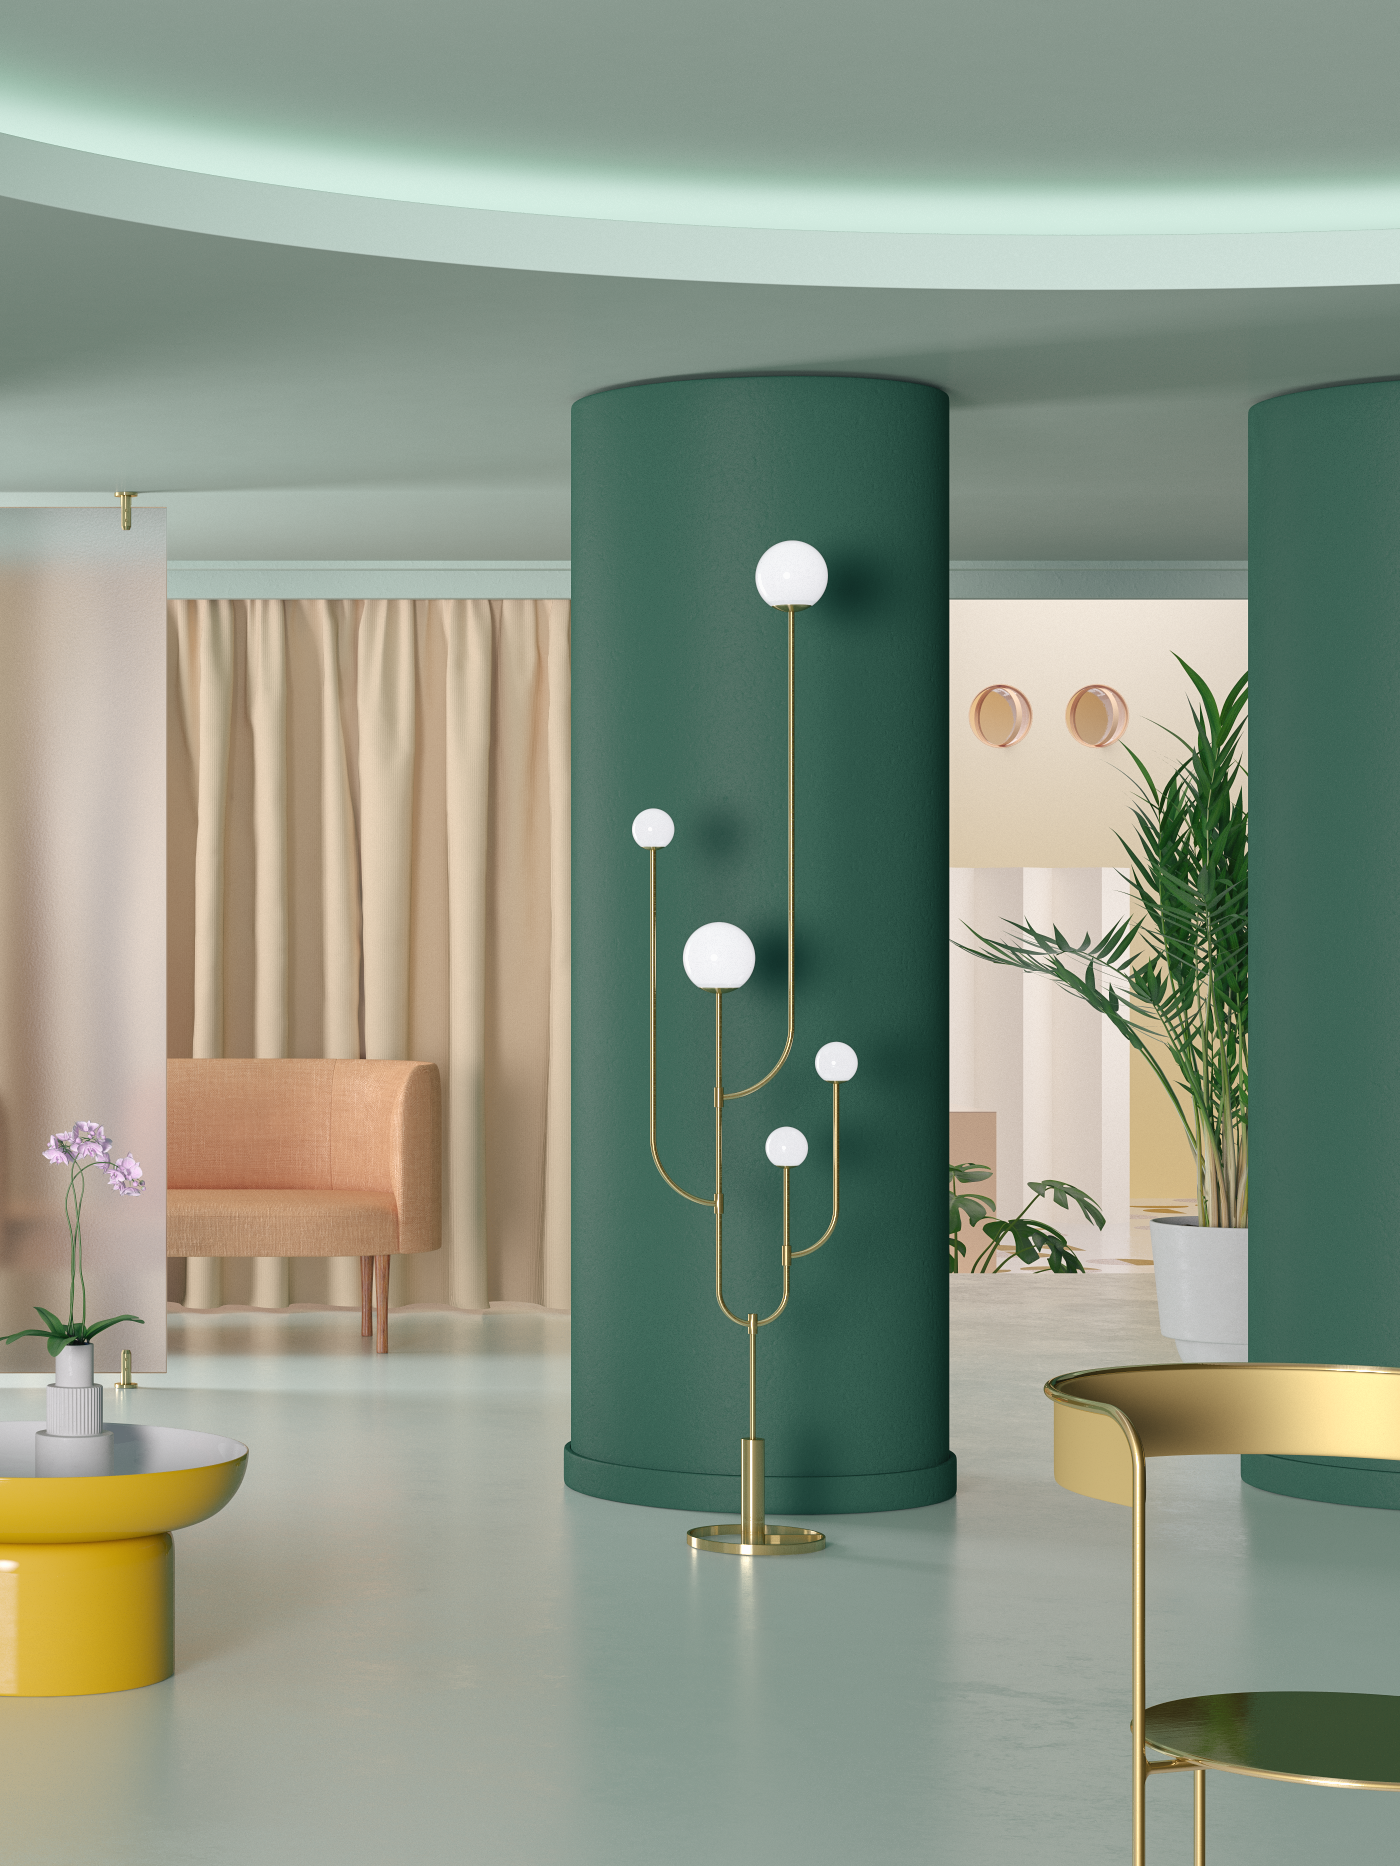 Seasons The Project Where A Modern Floor Lamp Changes Everything 8 modern floor lamp Seasons : The Project Where A Modern Floor Lamp Changes Everything Seasons The Project Where A Modern Floor Lamp Changes Everything 8